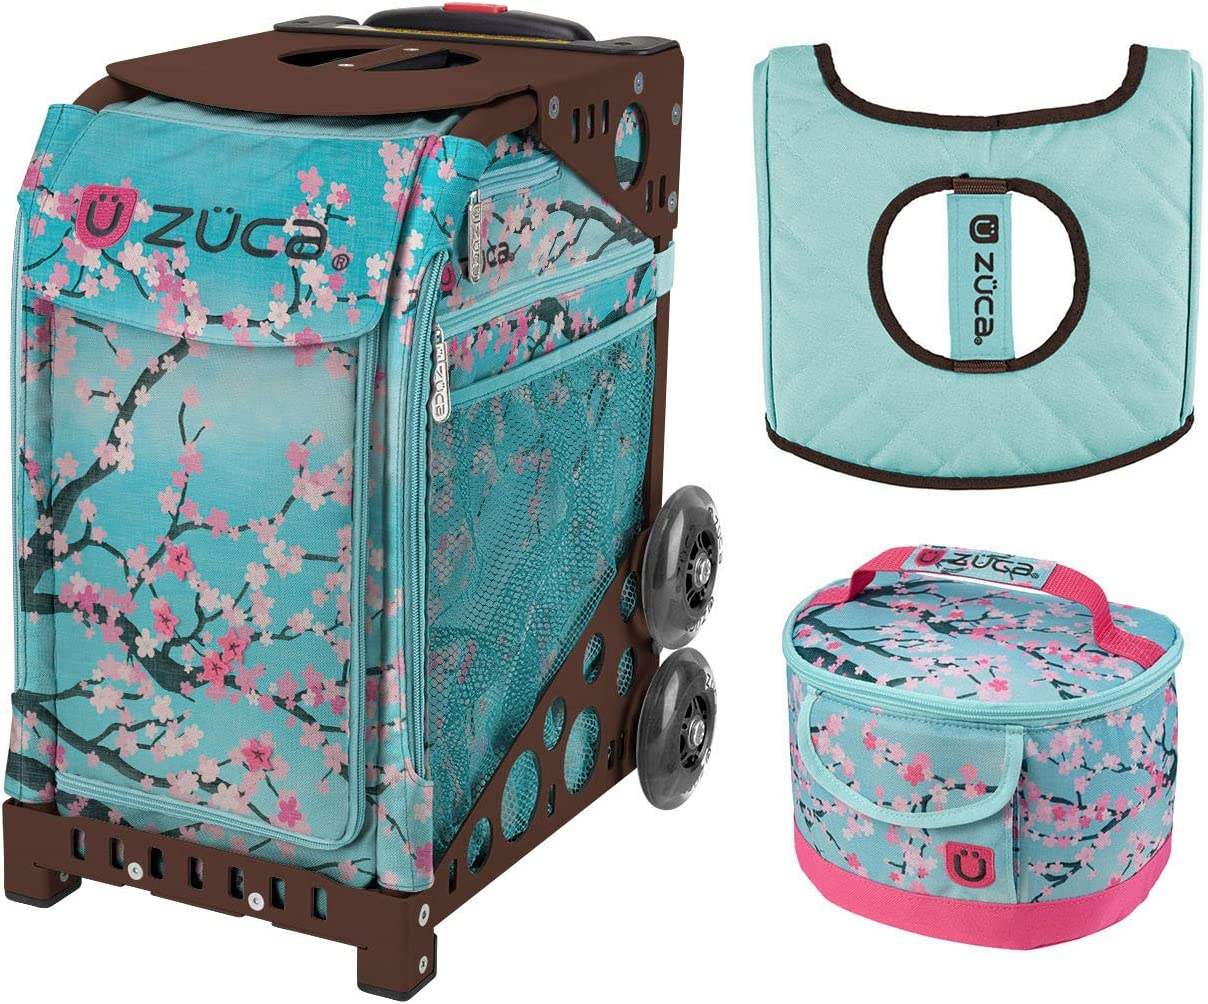 Hanami with Gift One Large and Two Mini Utility Pouches Zuca Sport Bag Turquoise Frame